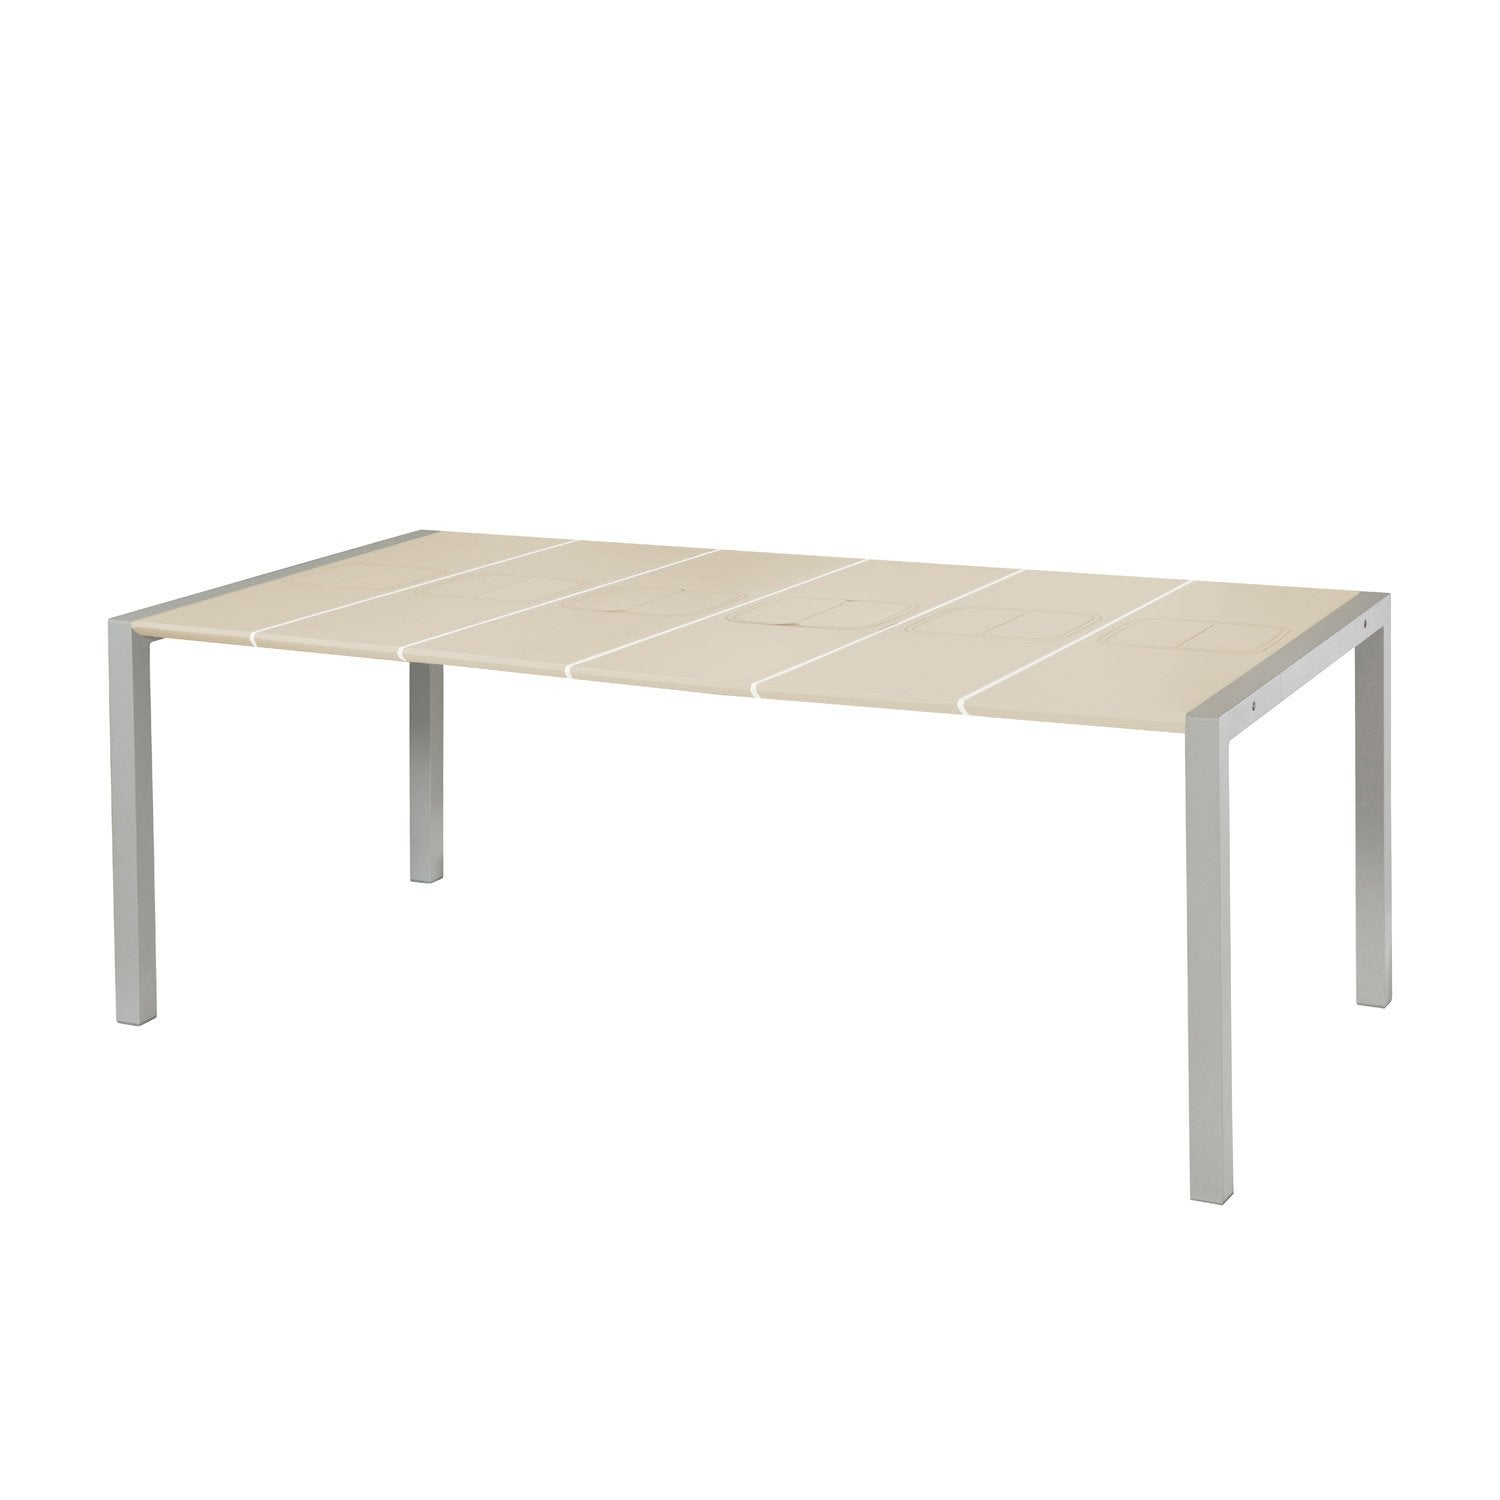 table de jardin grosfillex sunday rectangulaire lin 8 personnes leroy merlin. Black Bedroom Furniture Sets. Home Design Ideas